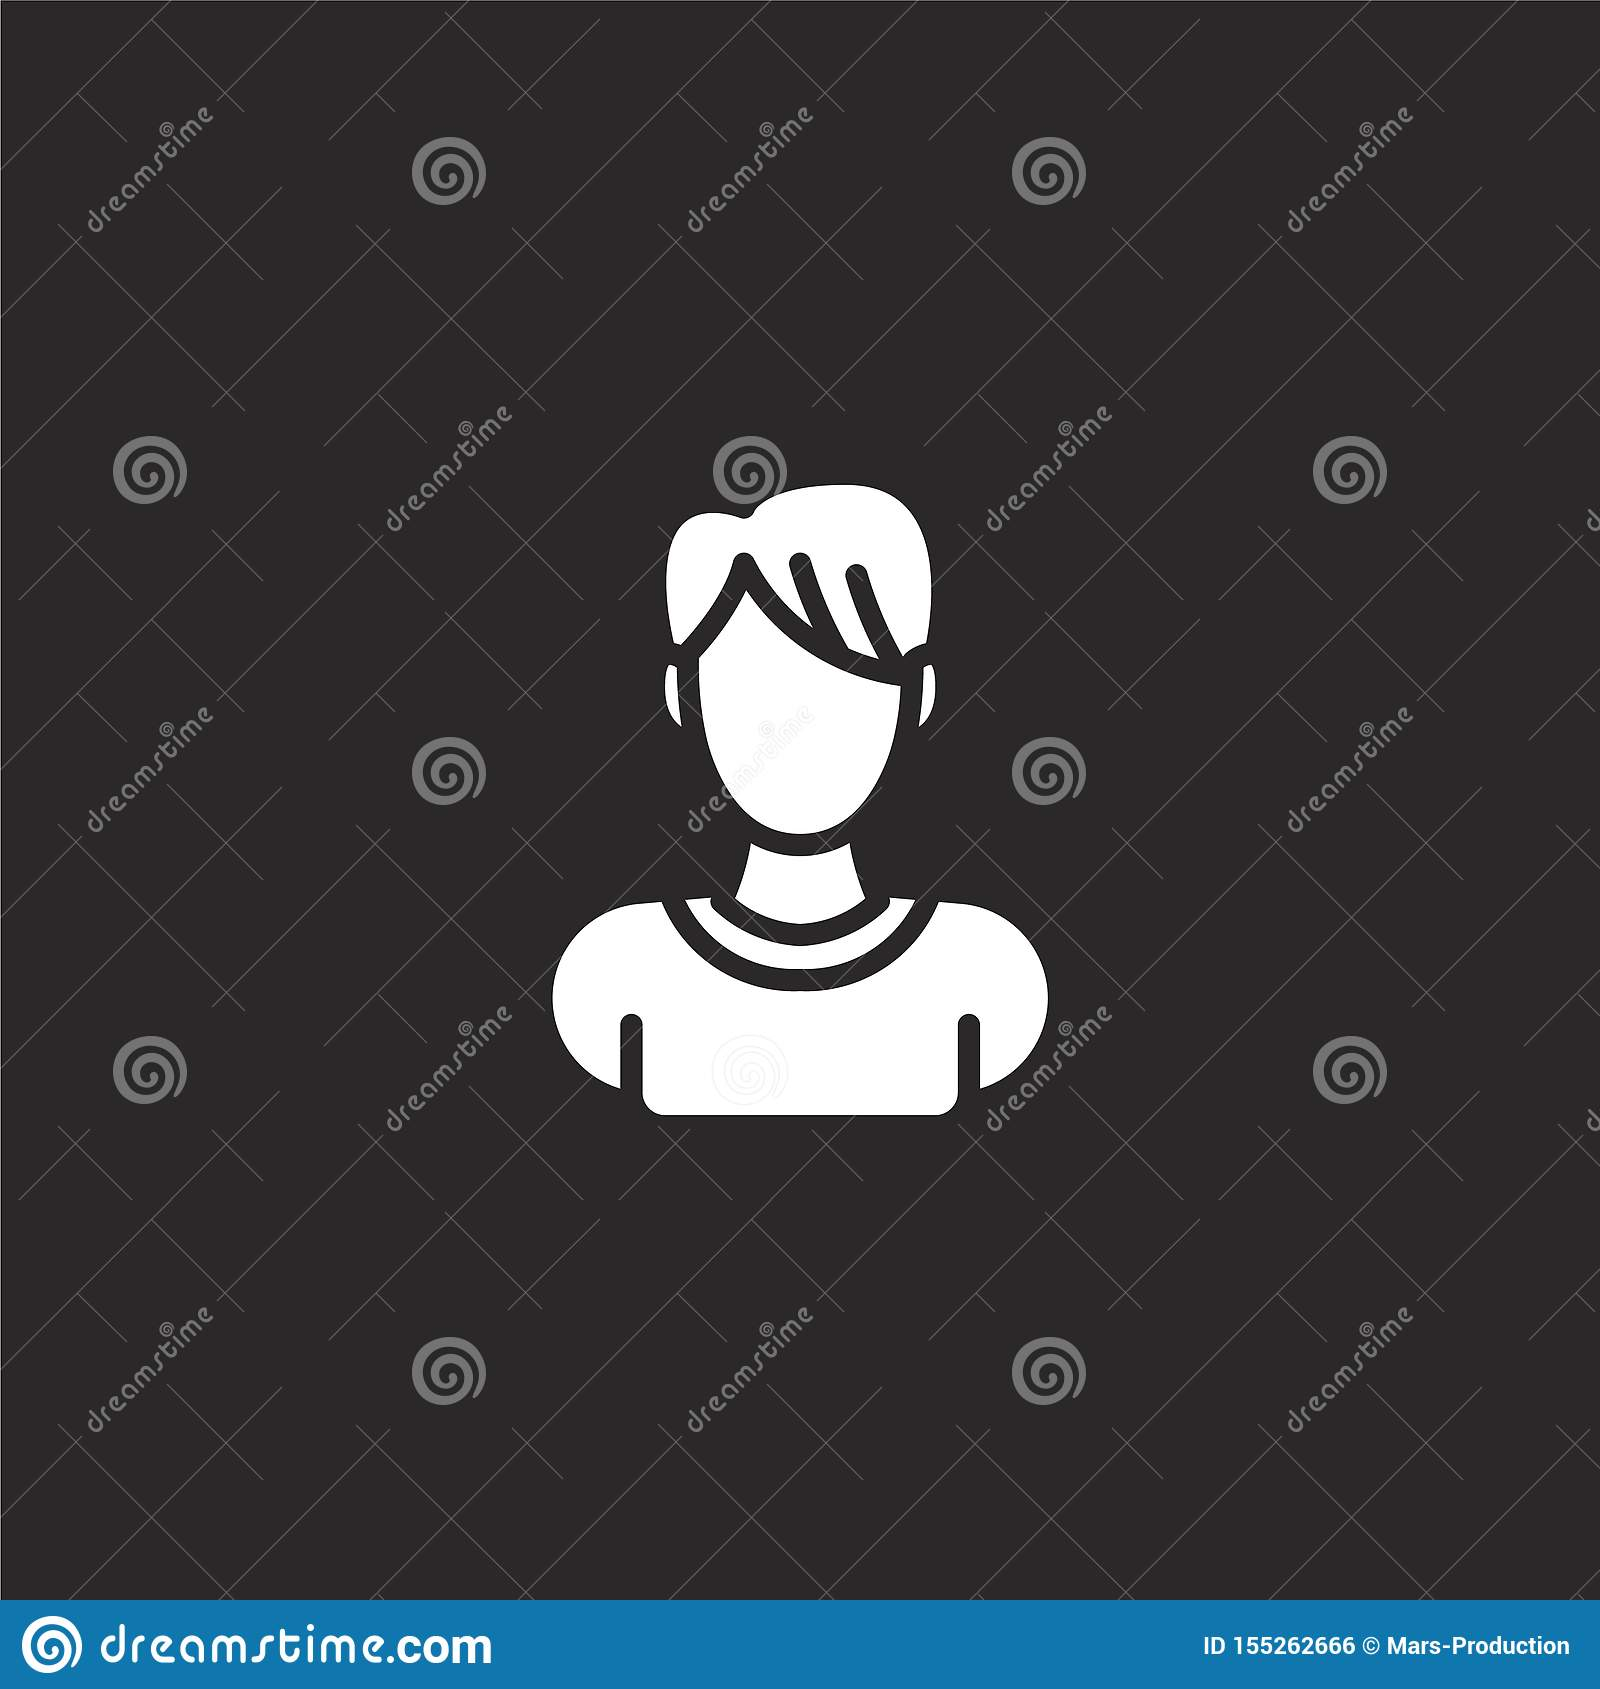 male icon. Filled male icon for website design and mobile, app development. male icon from filled profile placeholders collection